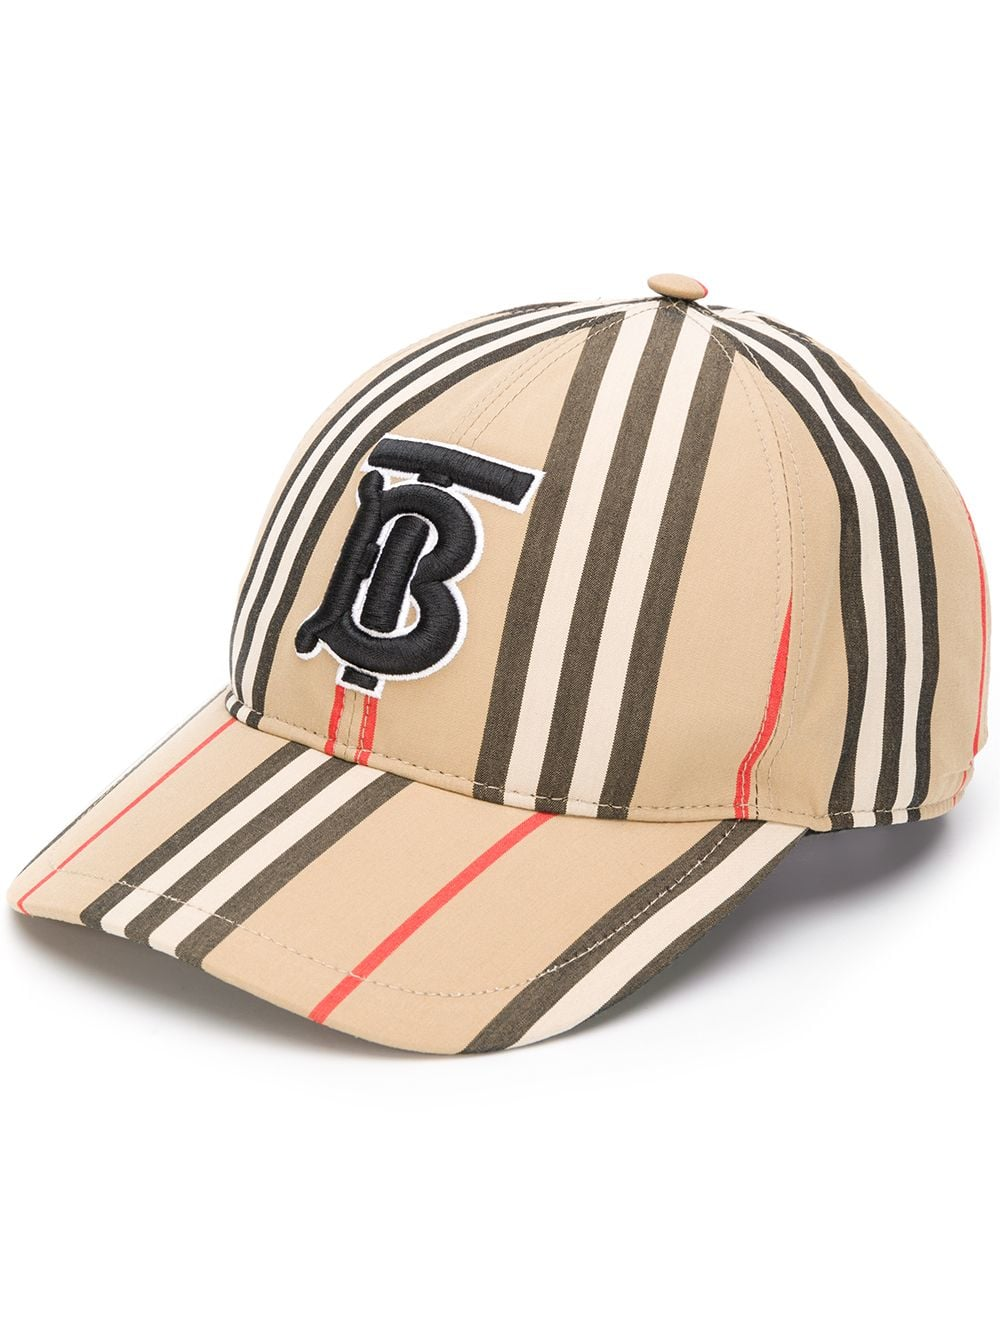 67431fcc572af Baseball Cap With Iconic Striped Pattern - BURBERRY - Russocapri